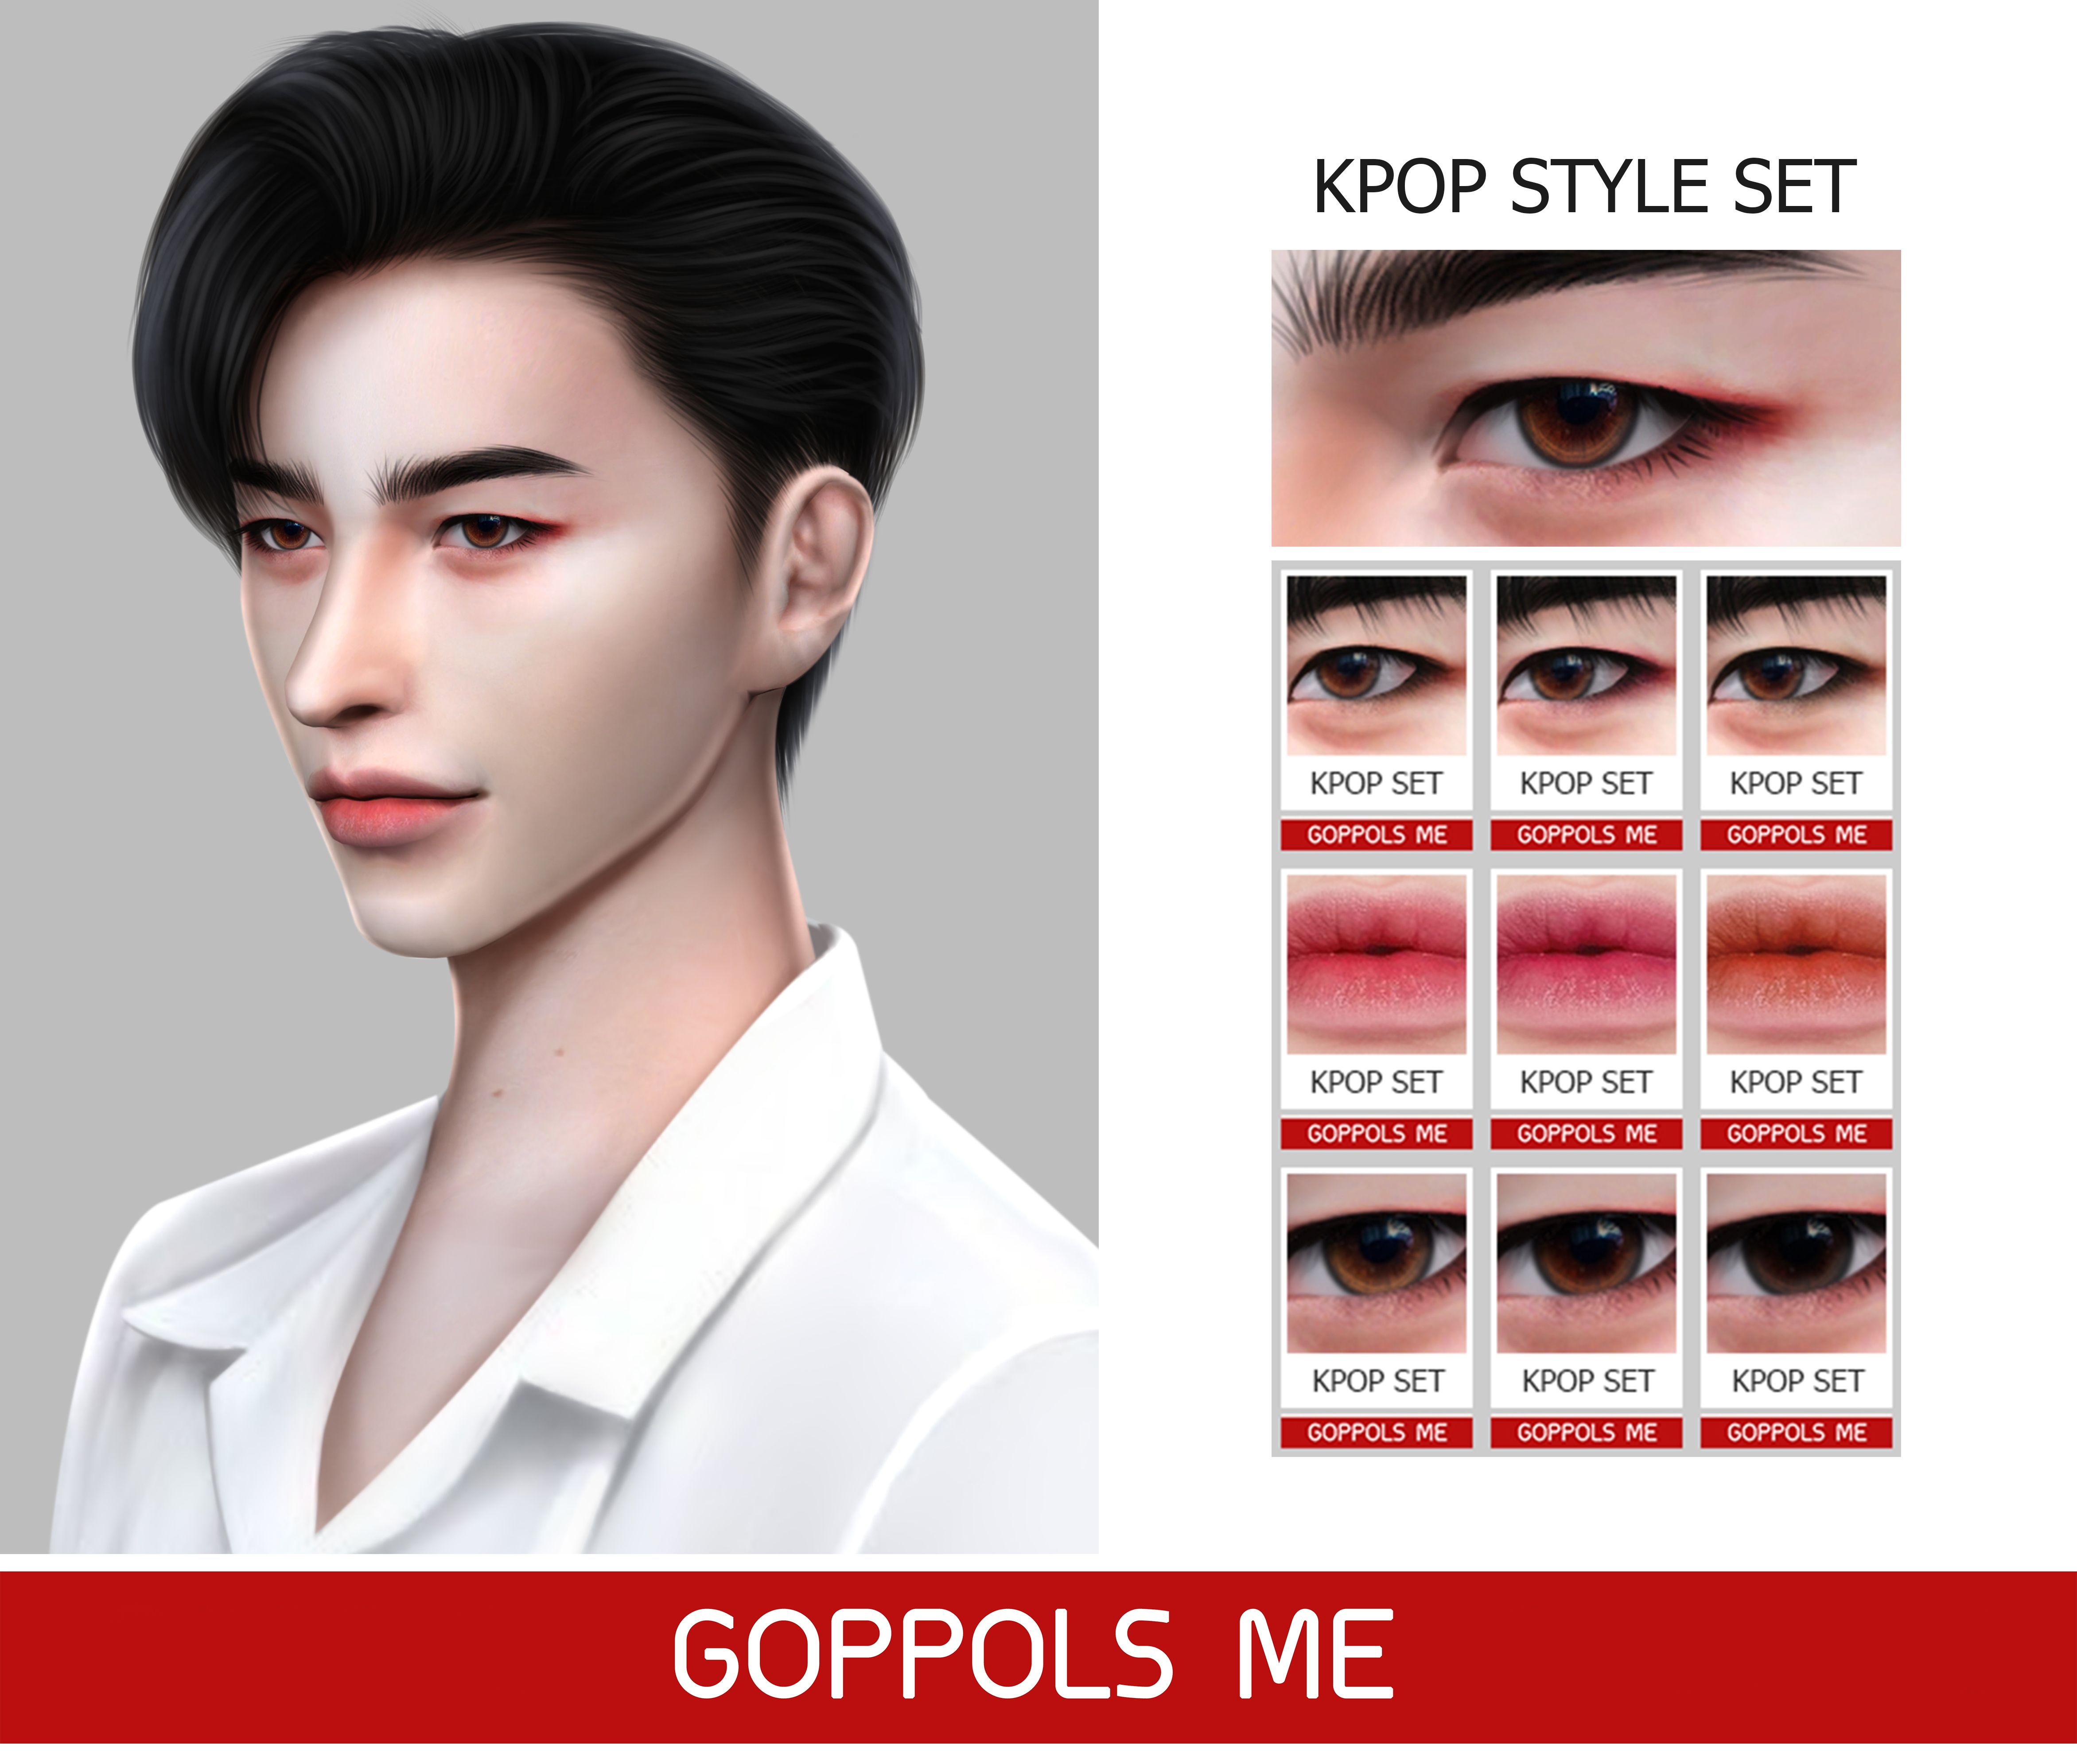 Gpme Kpop Style Set Sims 4 Hair Male Sims Hair The Sims 4 Skin